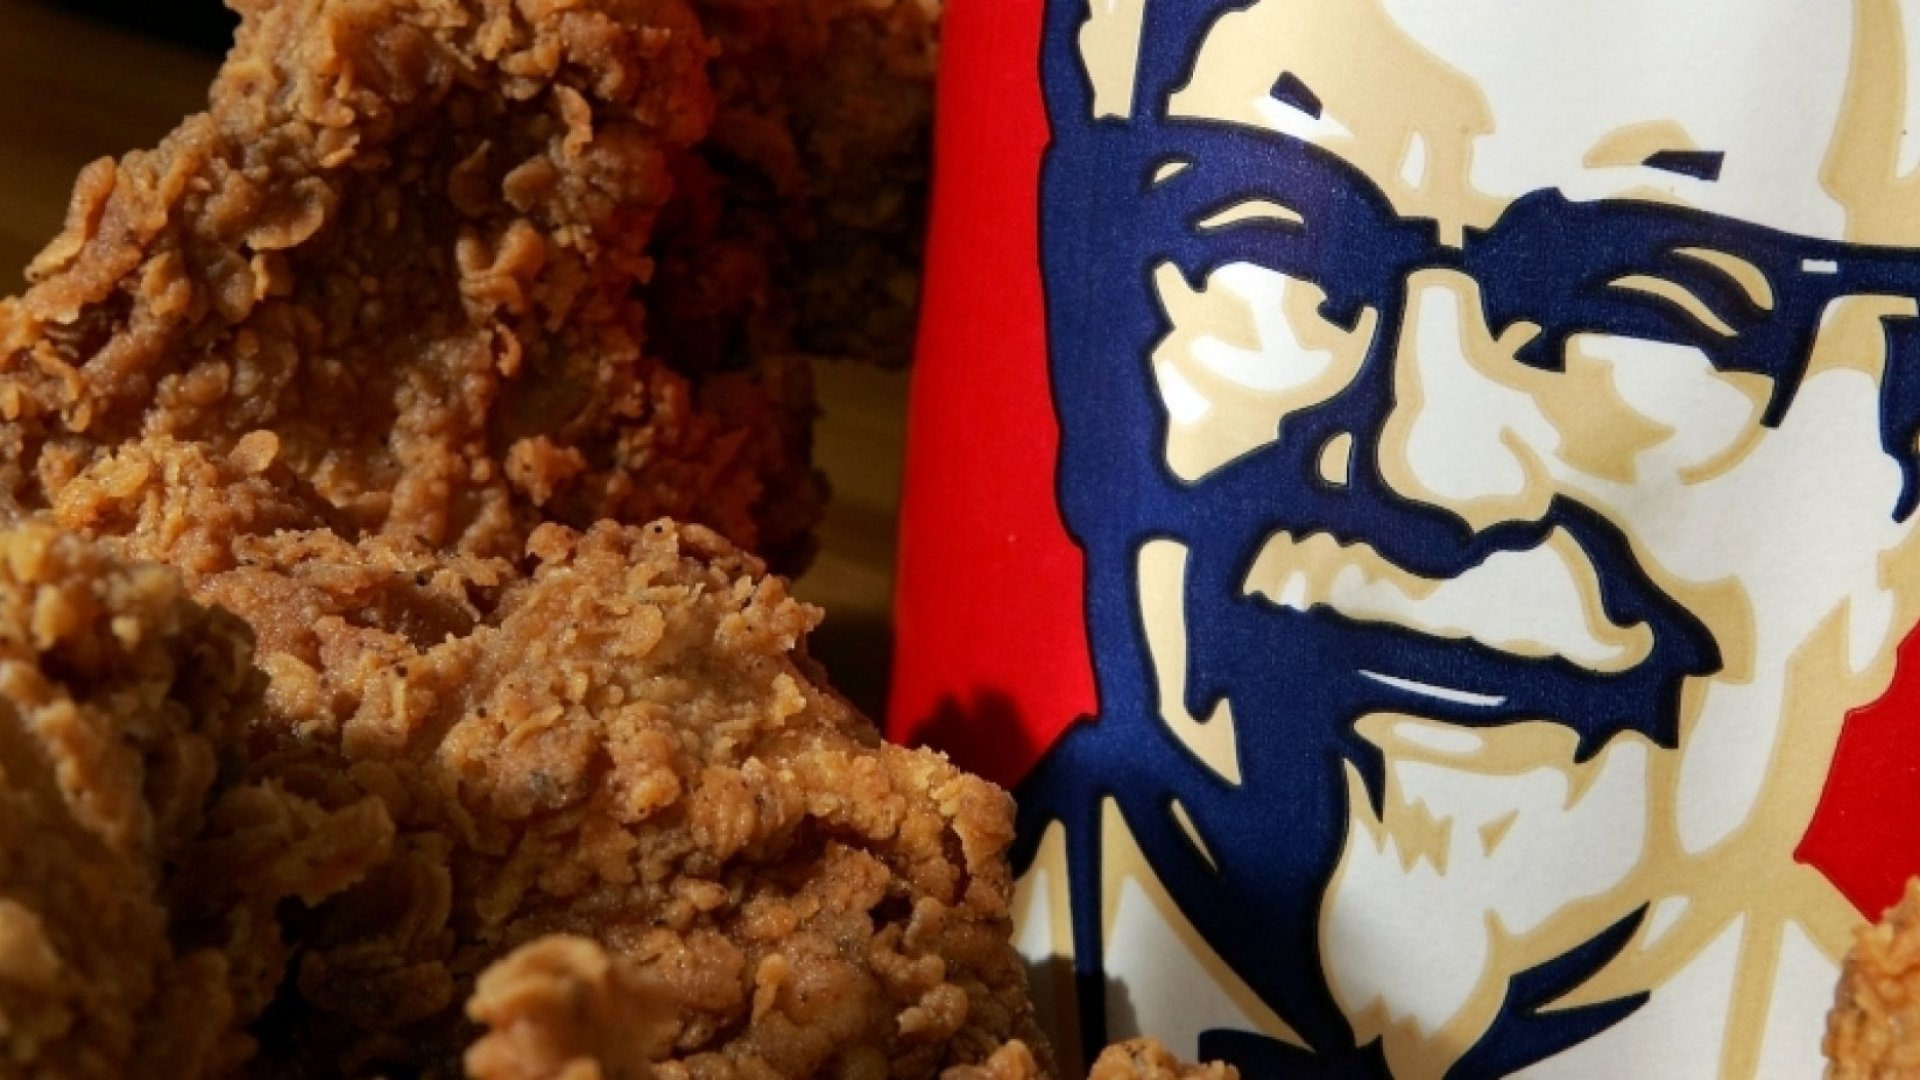 KFC Brings Back Colonel Sanders (As A Weird Old George W. Bush)